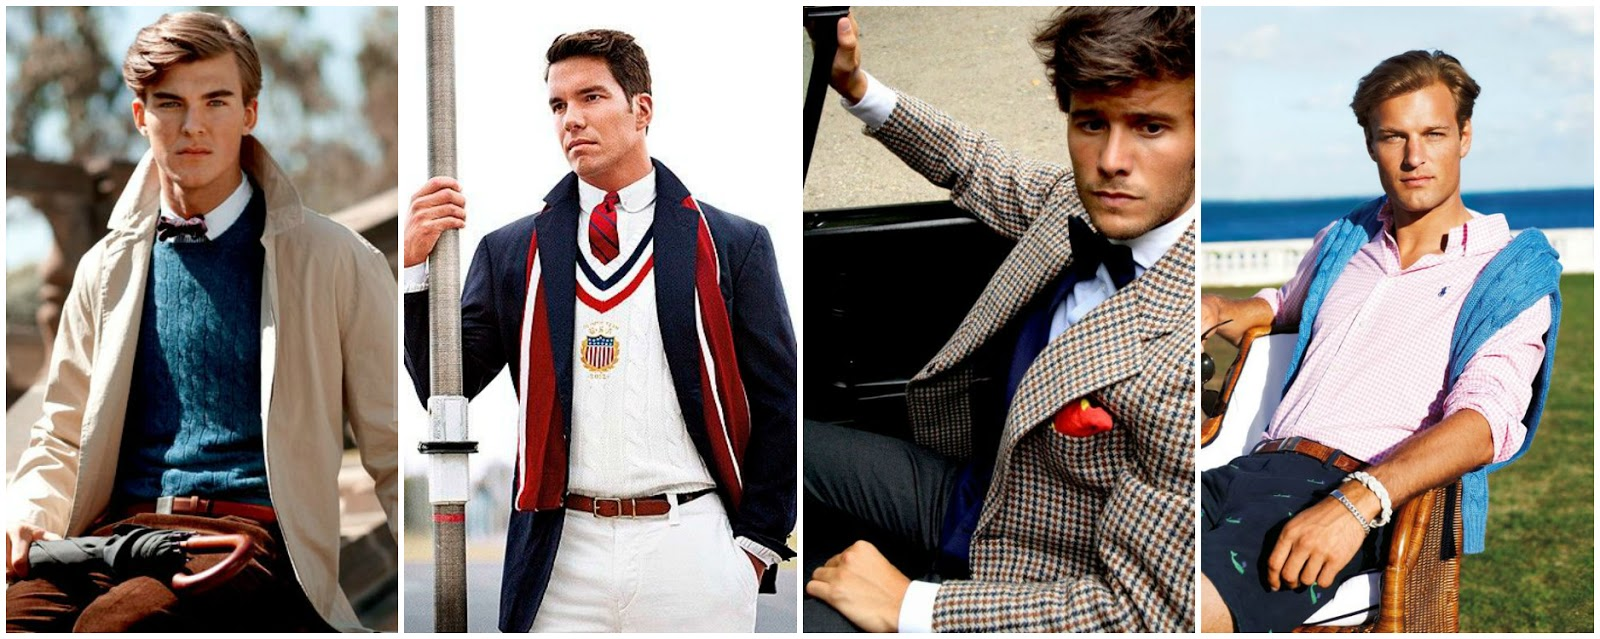 Craig Of That Dapper Chap Shows Us How To Achieve The Preppy Style And Stay On Trend This Summer